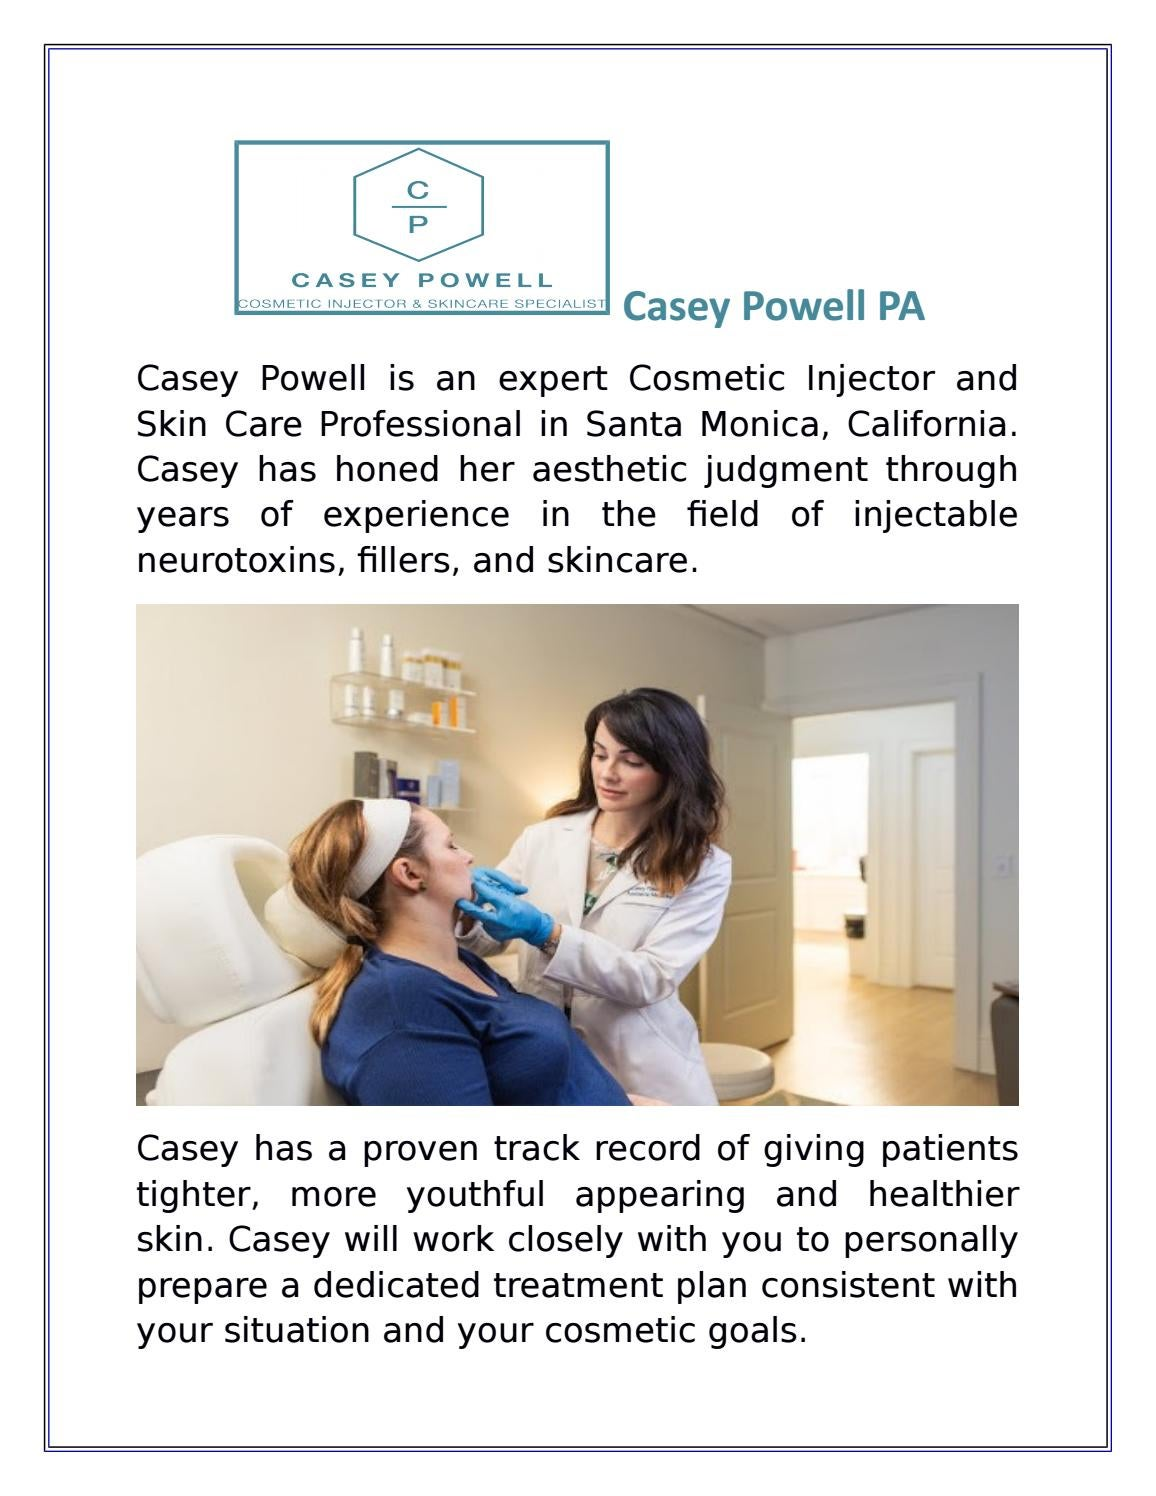 Juvederm Dermal Filler in Los Angeles by Casey Powell PA - issuu